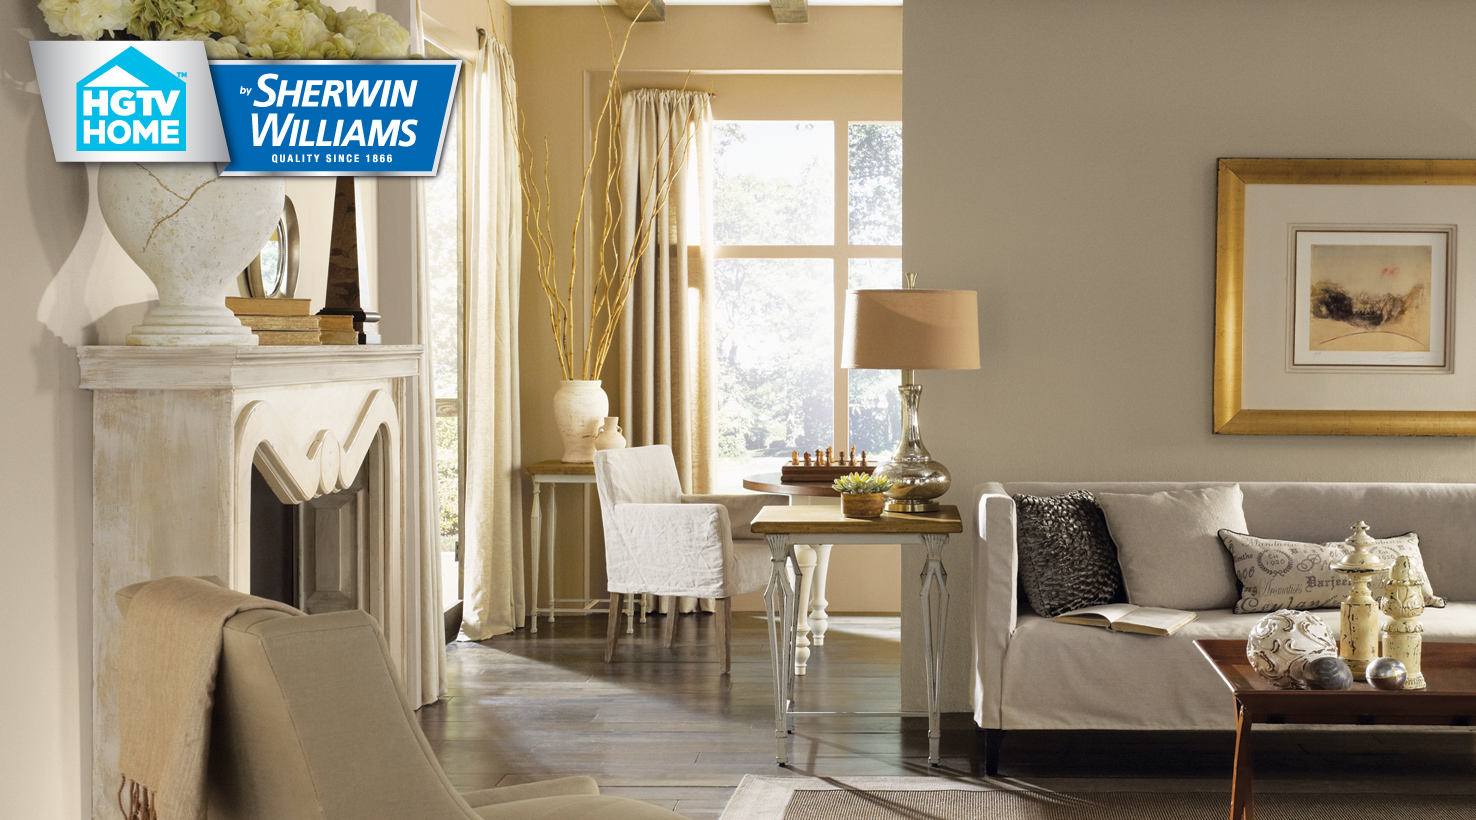 best neutral paint colors for living room sherwin williams ideas pics nuance color collection hgtv home by